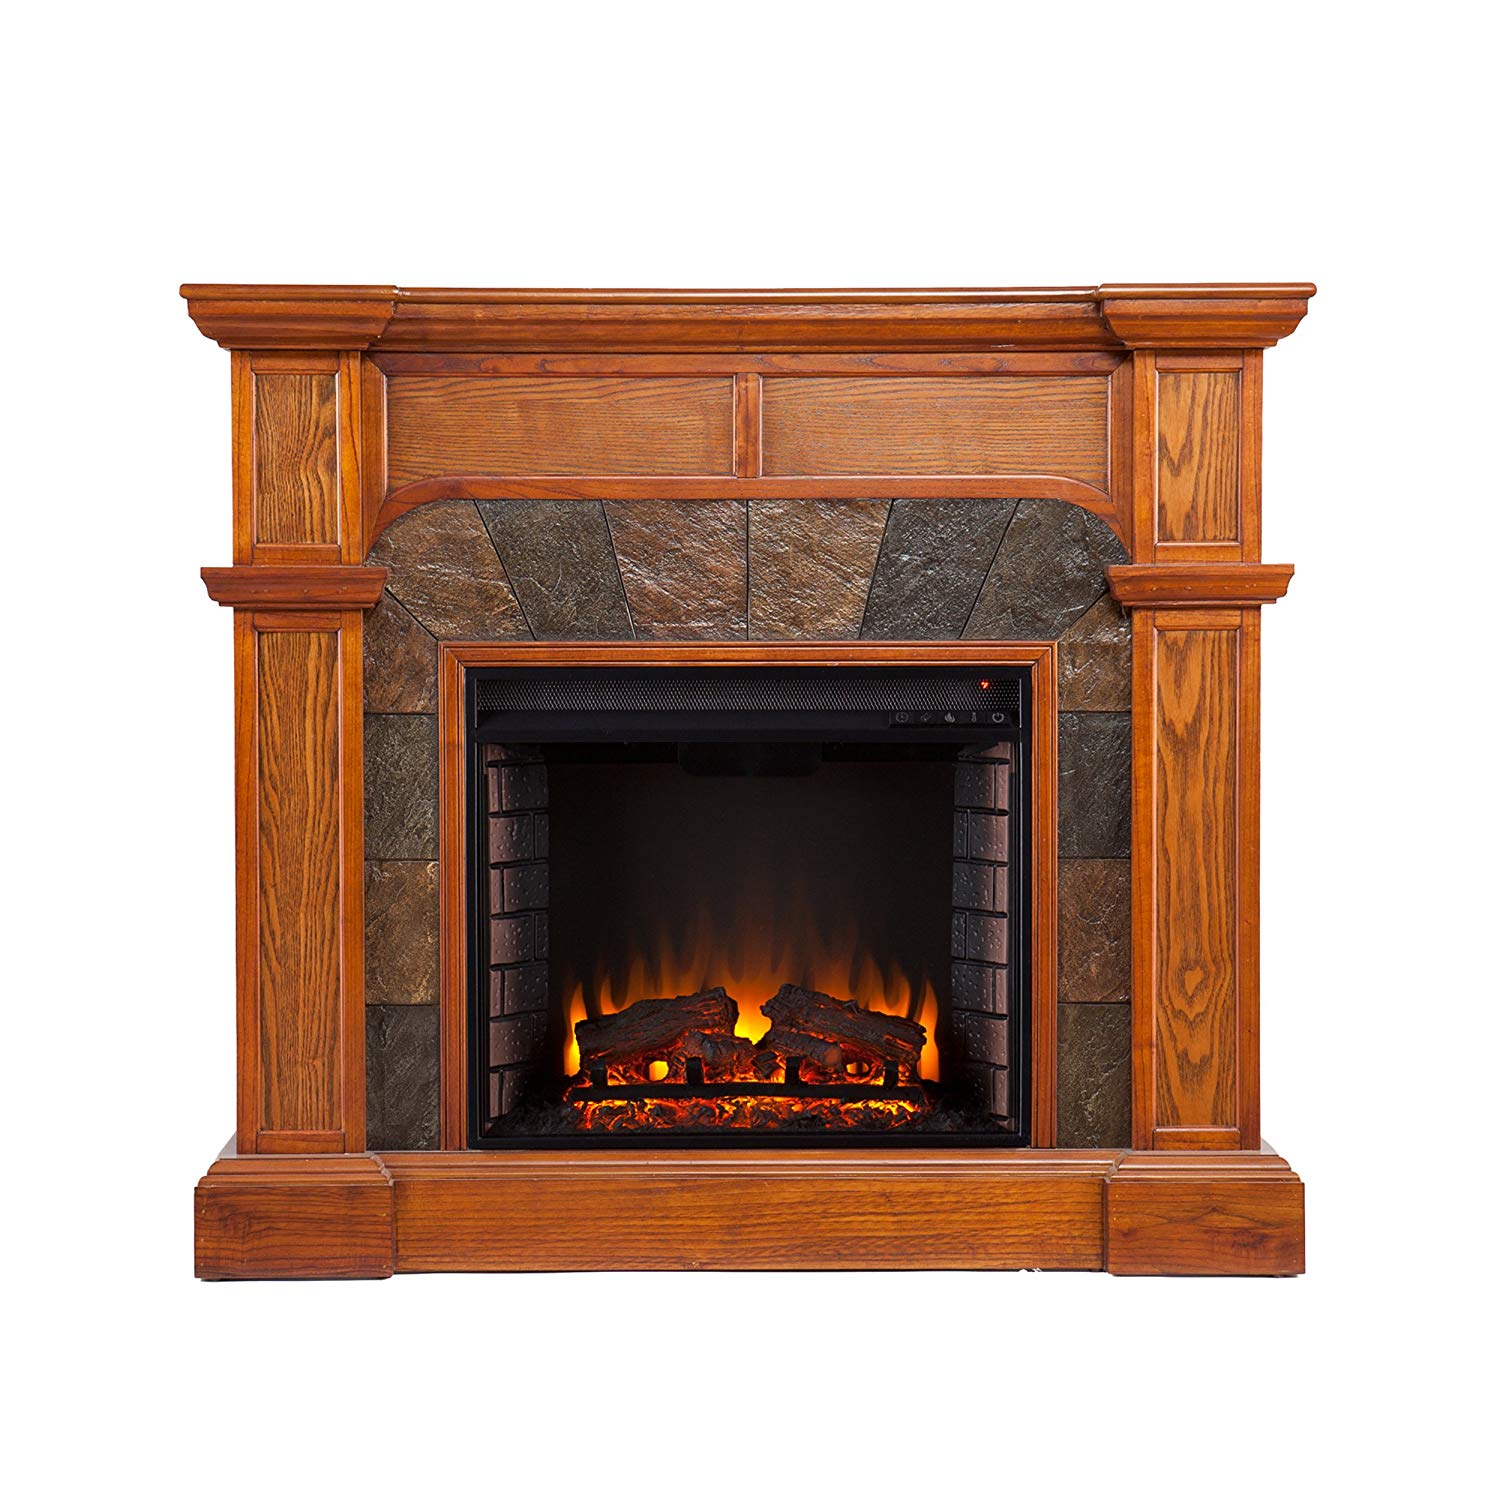 Southern Enterprises Cartwright Convertible Electric Fireplace Mission Oak Finish with Earth ToneTiles